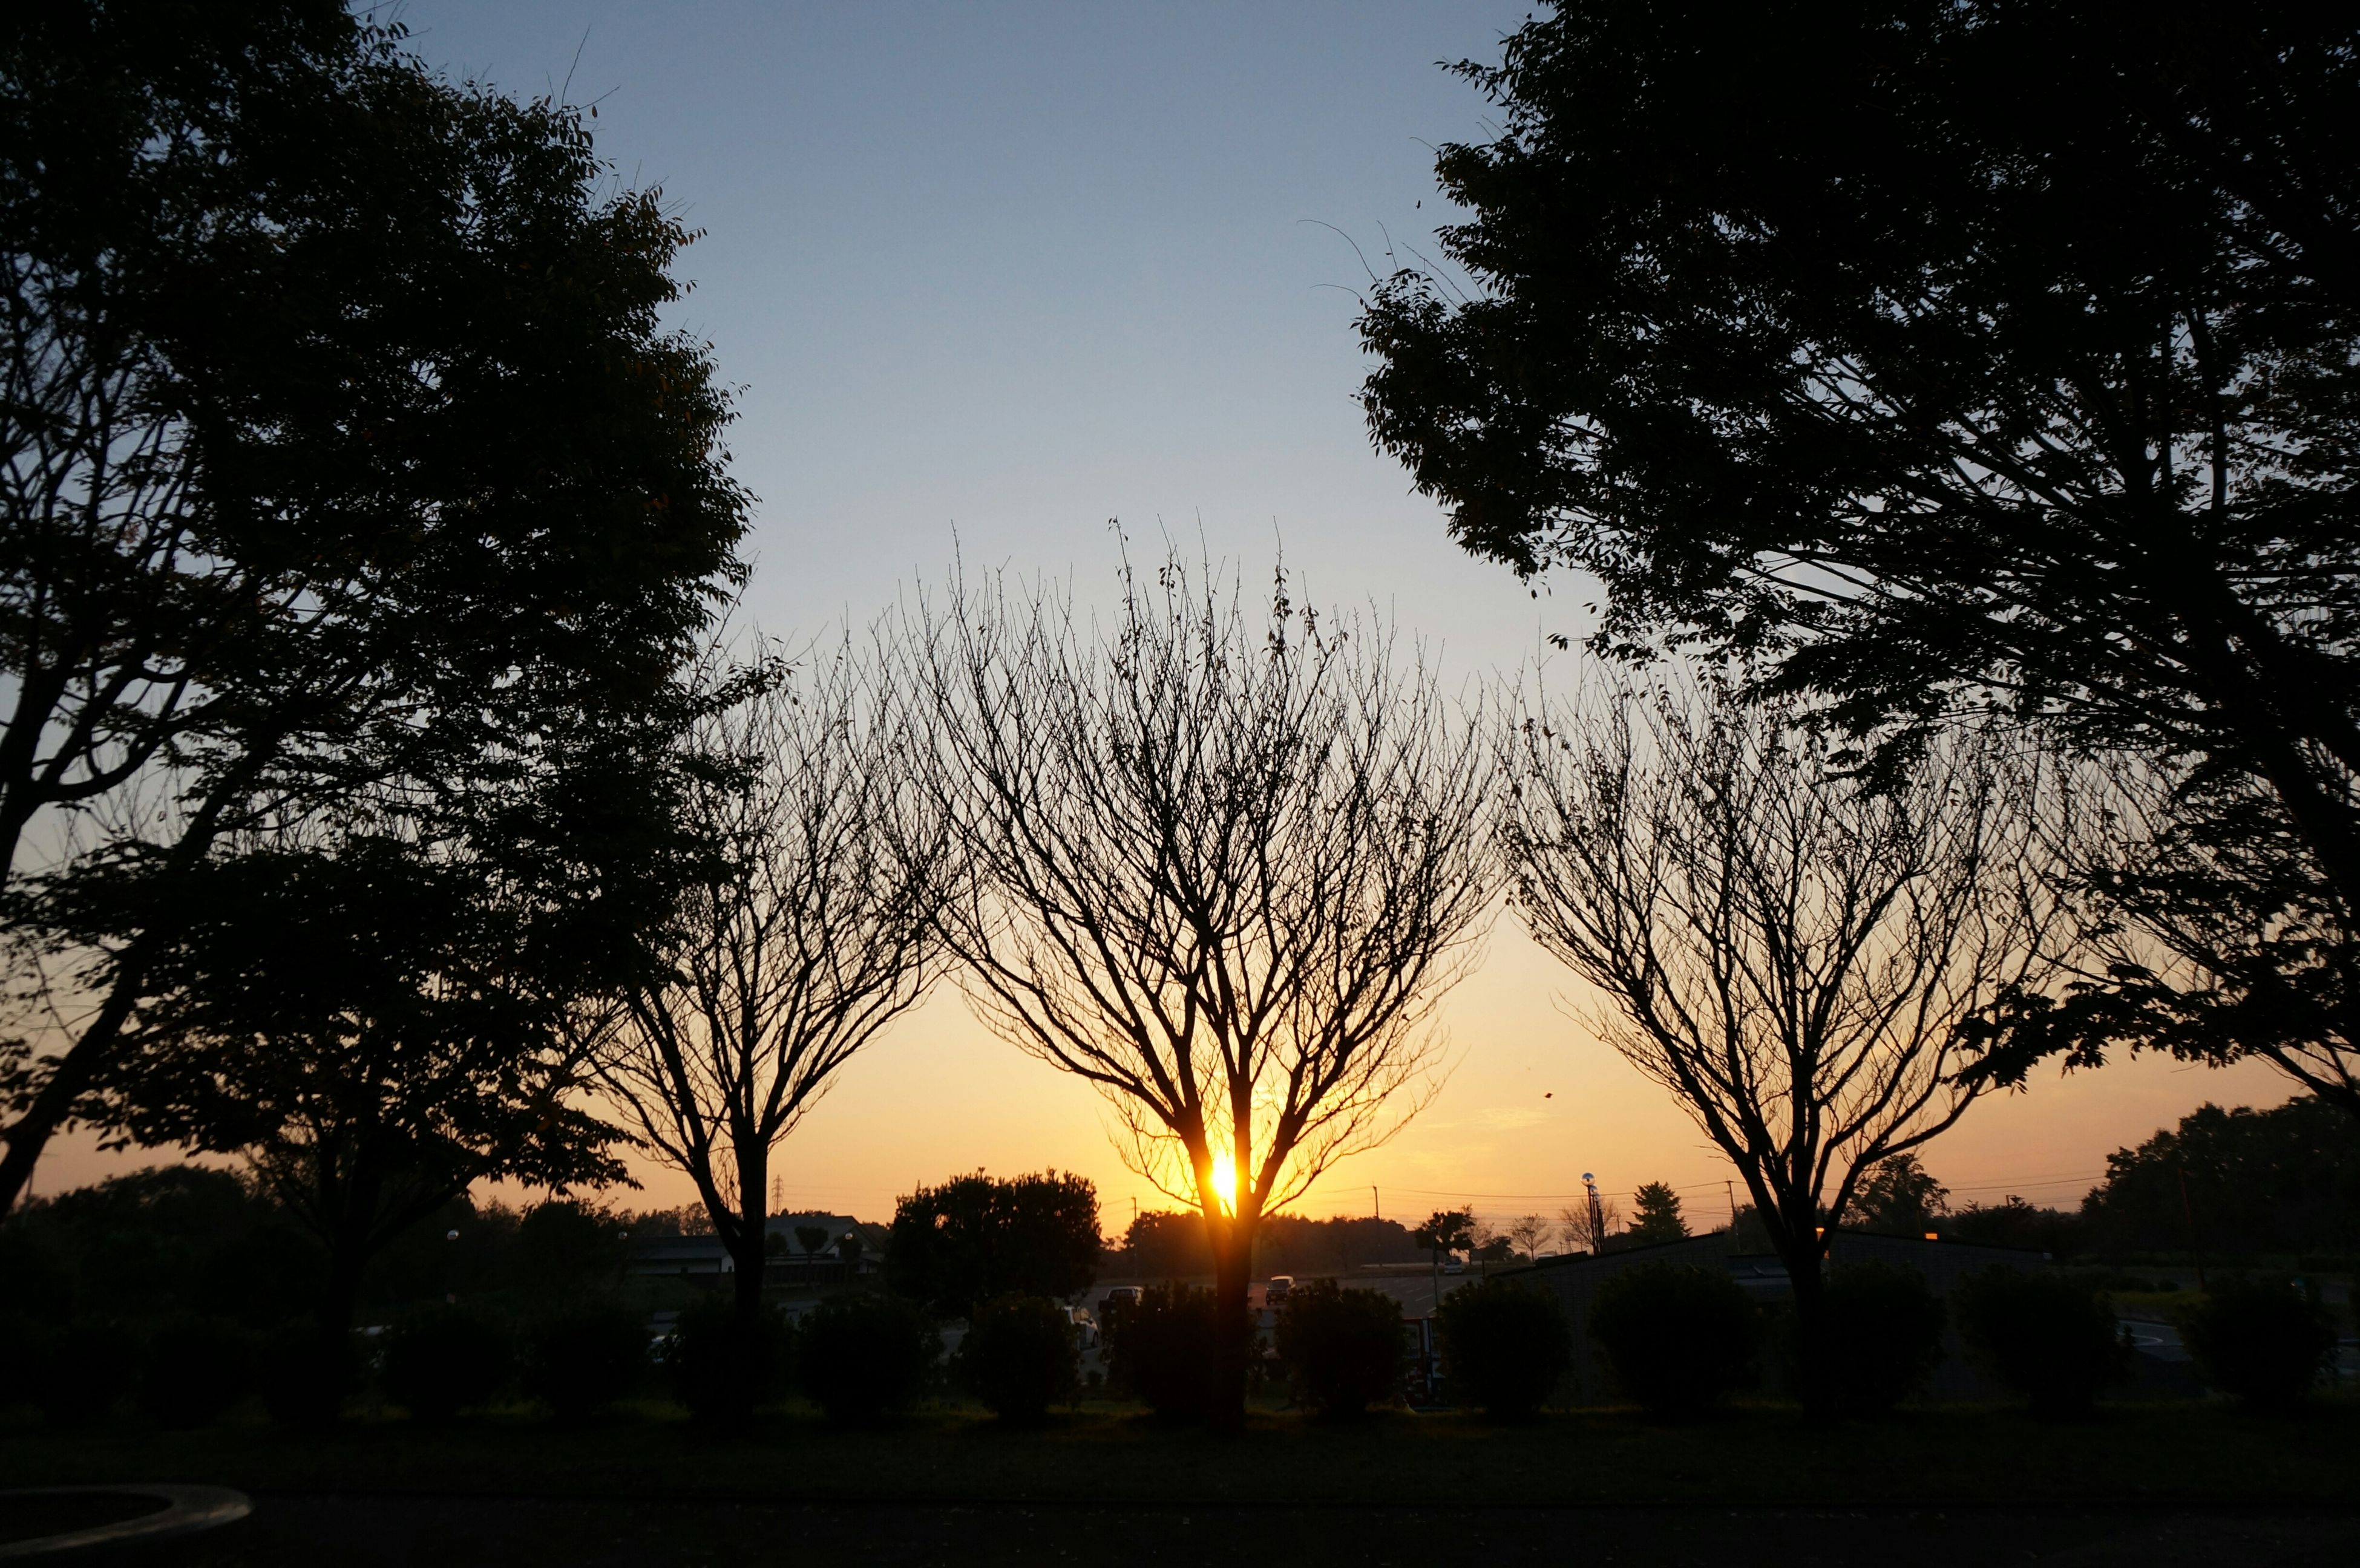 sunset, silhouette, tree, tranquil scene, tranquility, scenics, beauty in nature, sun, nature, sky, landscape, orange color, idyllic, clear sky, field, sunlight, bare tree, growth, branch, no people